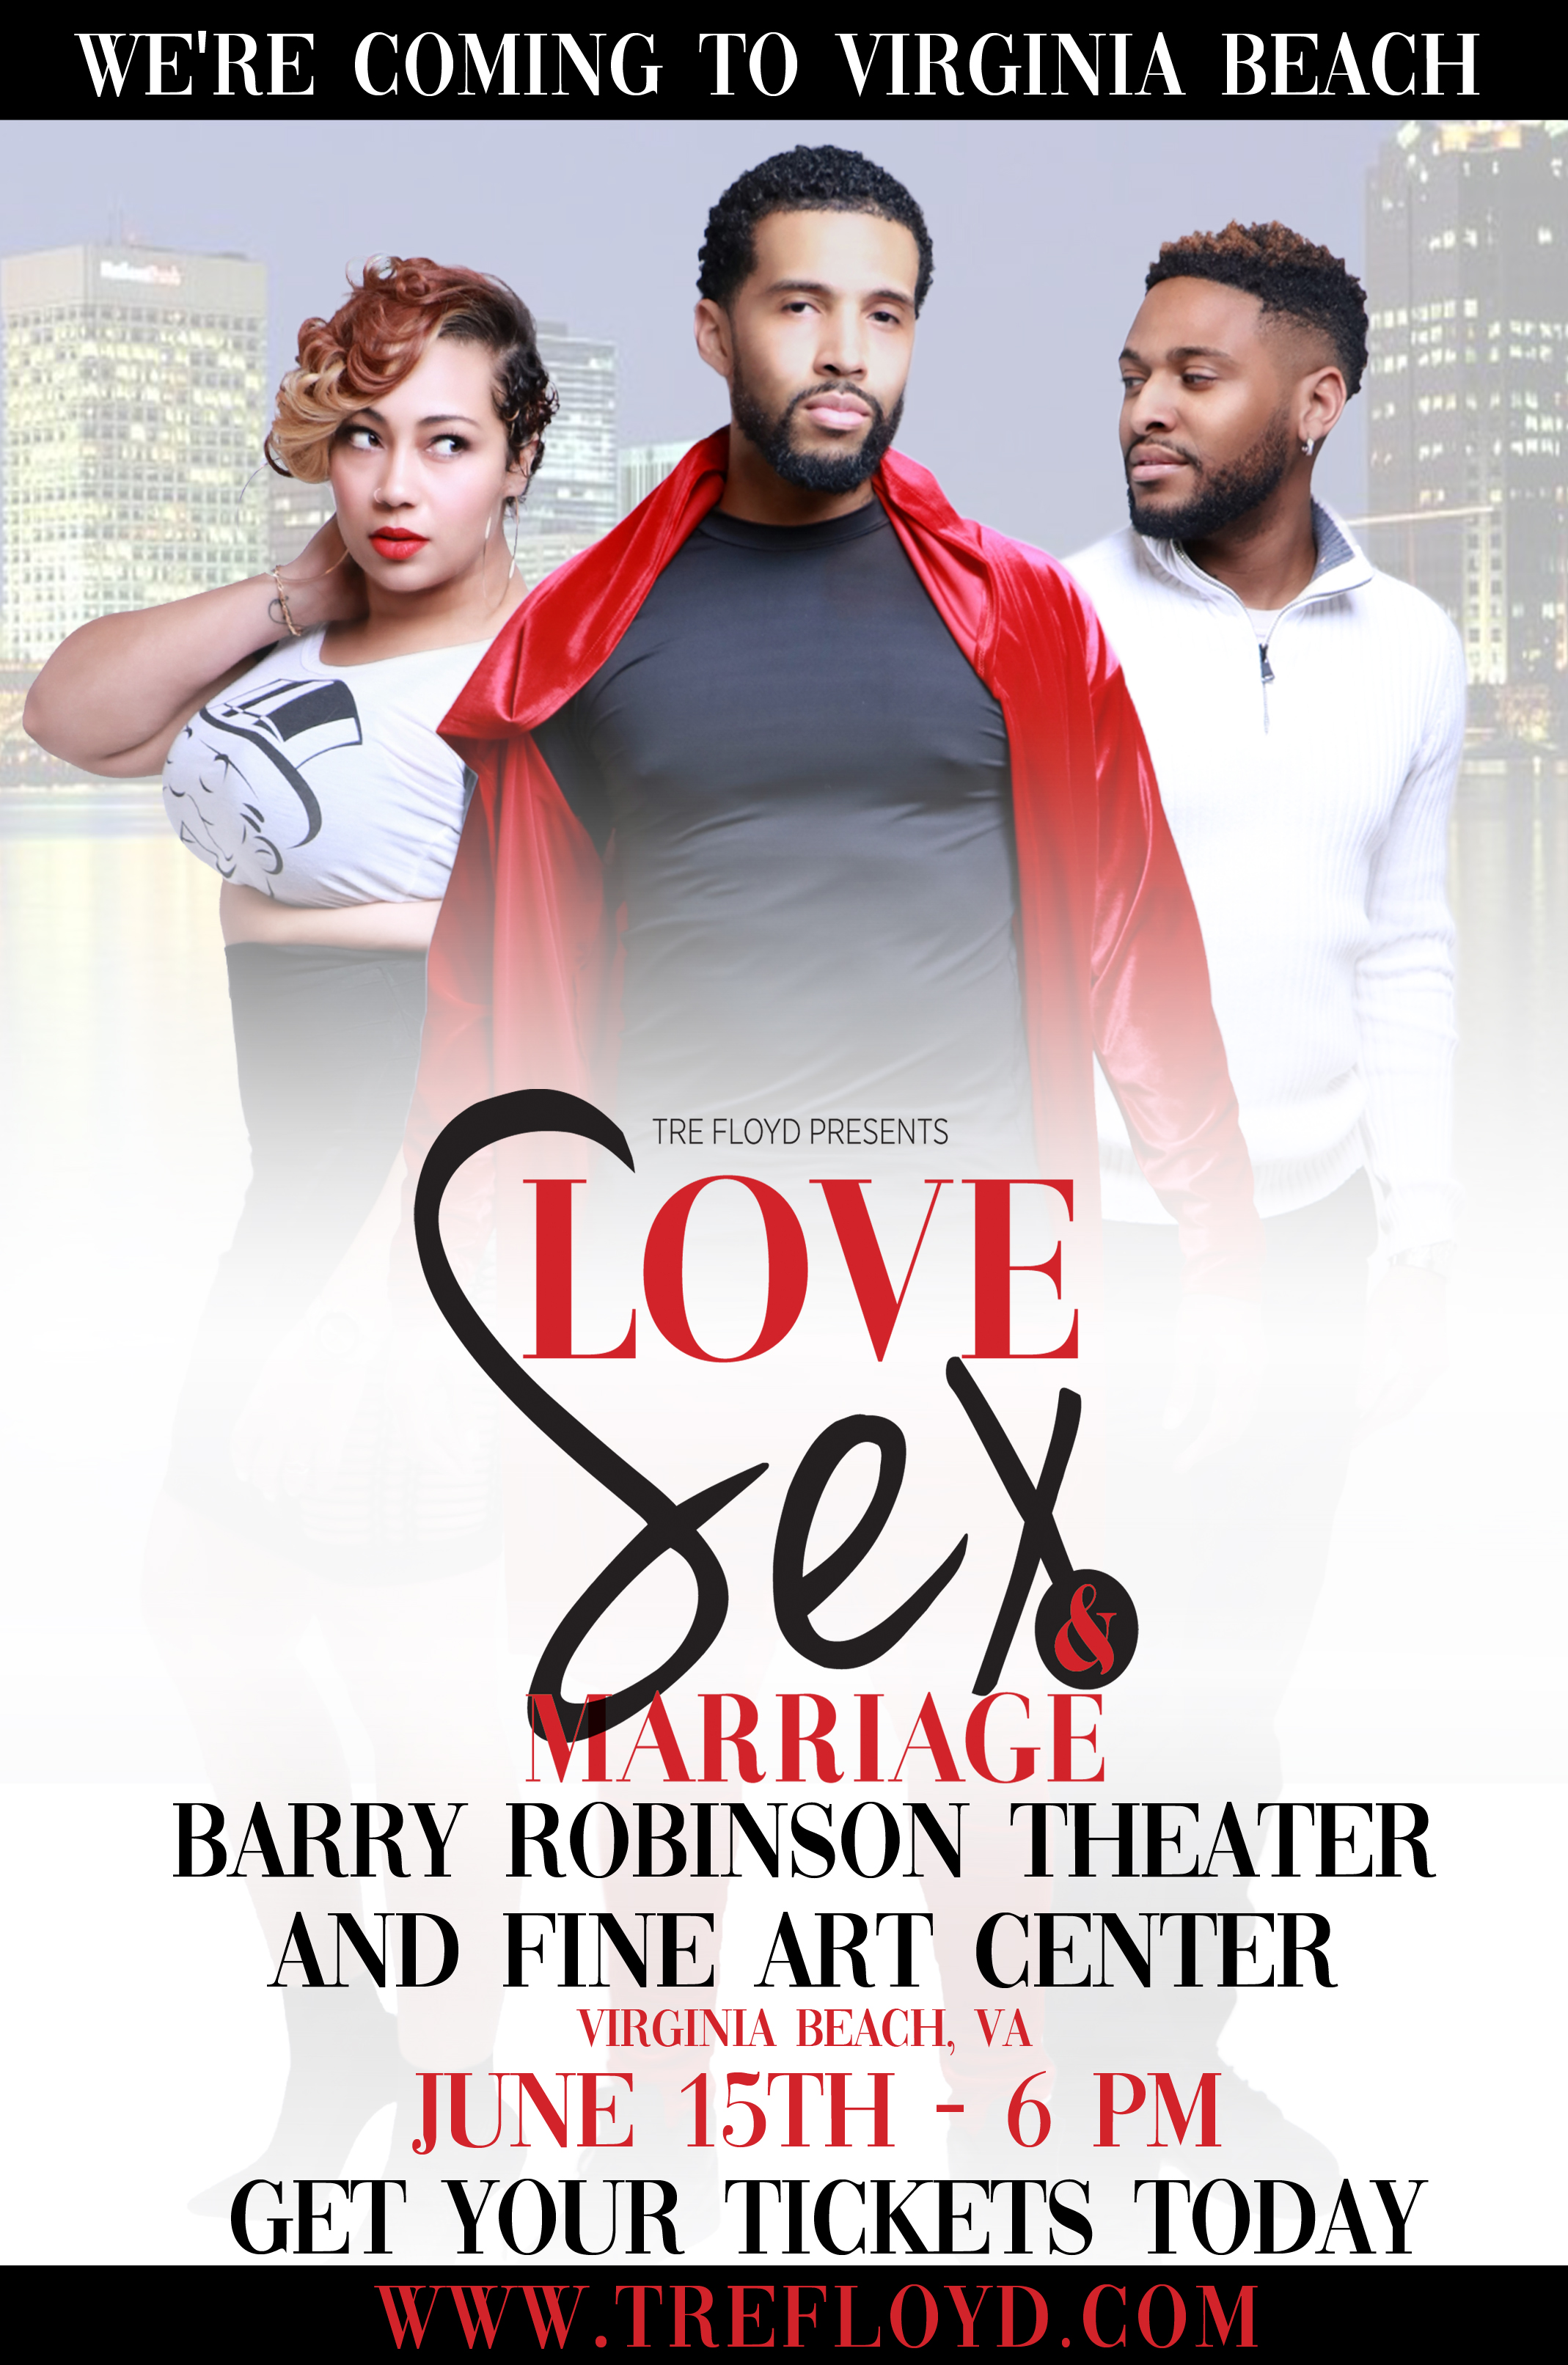 446758b5e51 Love Sex and Marriage: The Stage Play - Virginia Beach - Tre Floyd ...